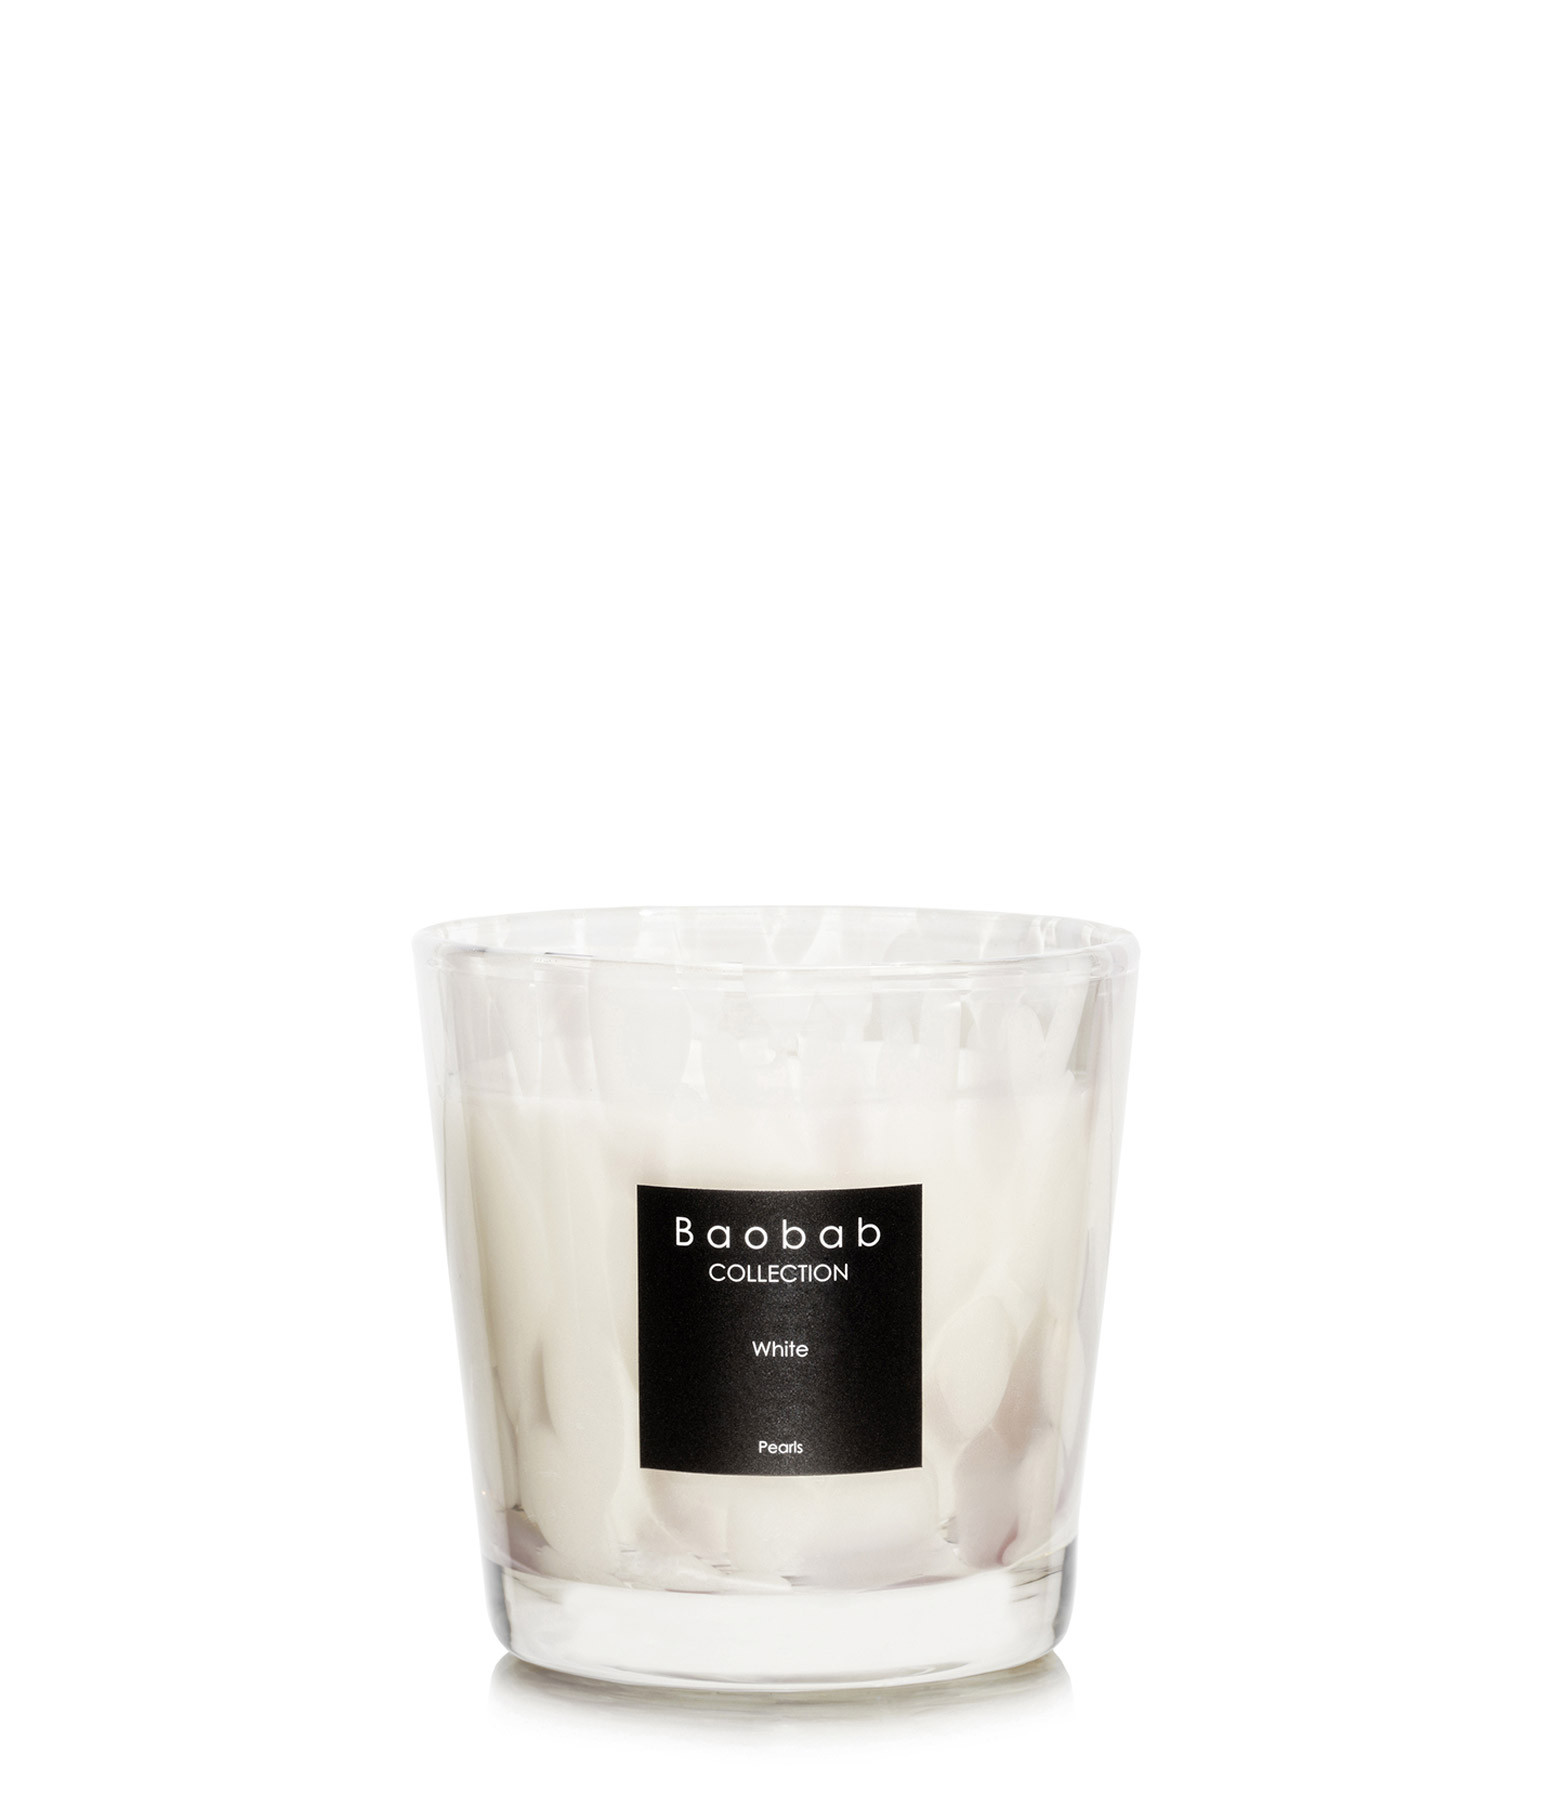 BAOBAB COLLECTION - Bougie White Pearls Max One